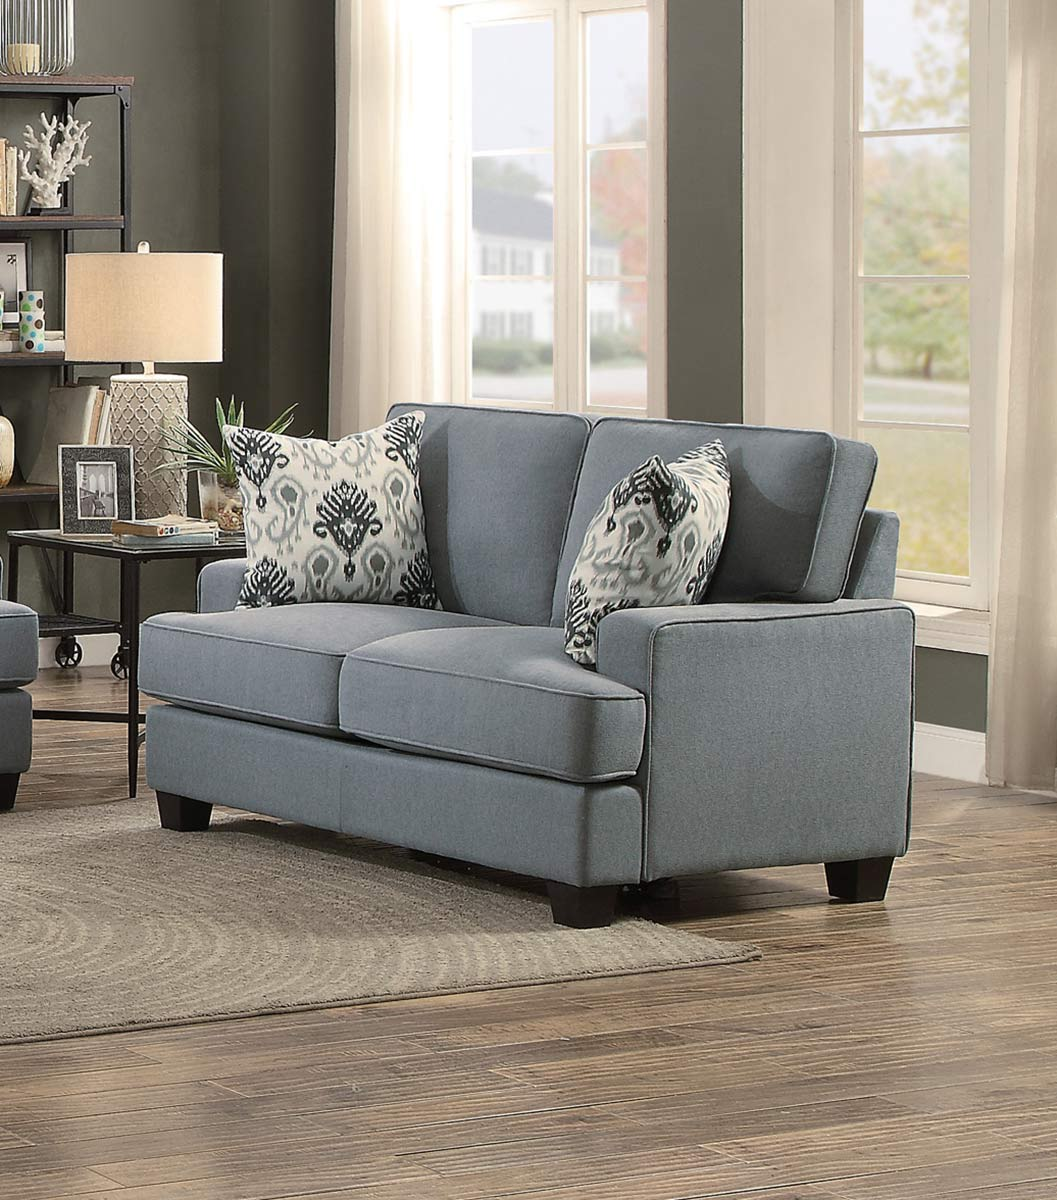 Homelegance kenner love seat gray fabric 8245gy 2 at for Home decor kenner